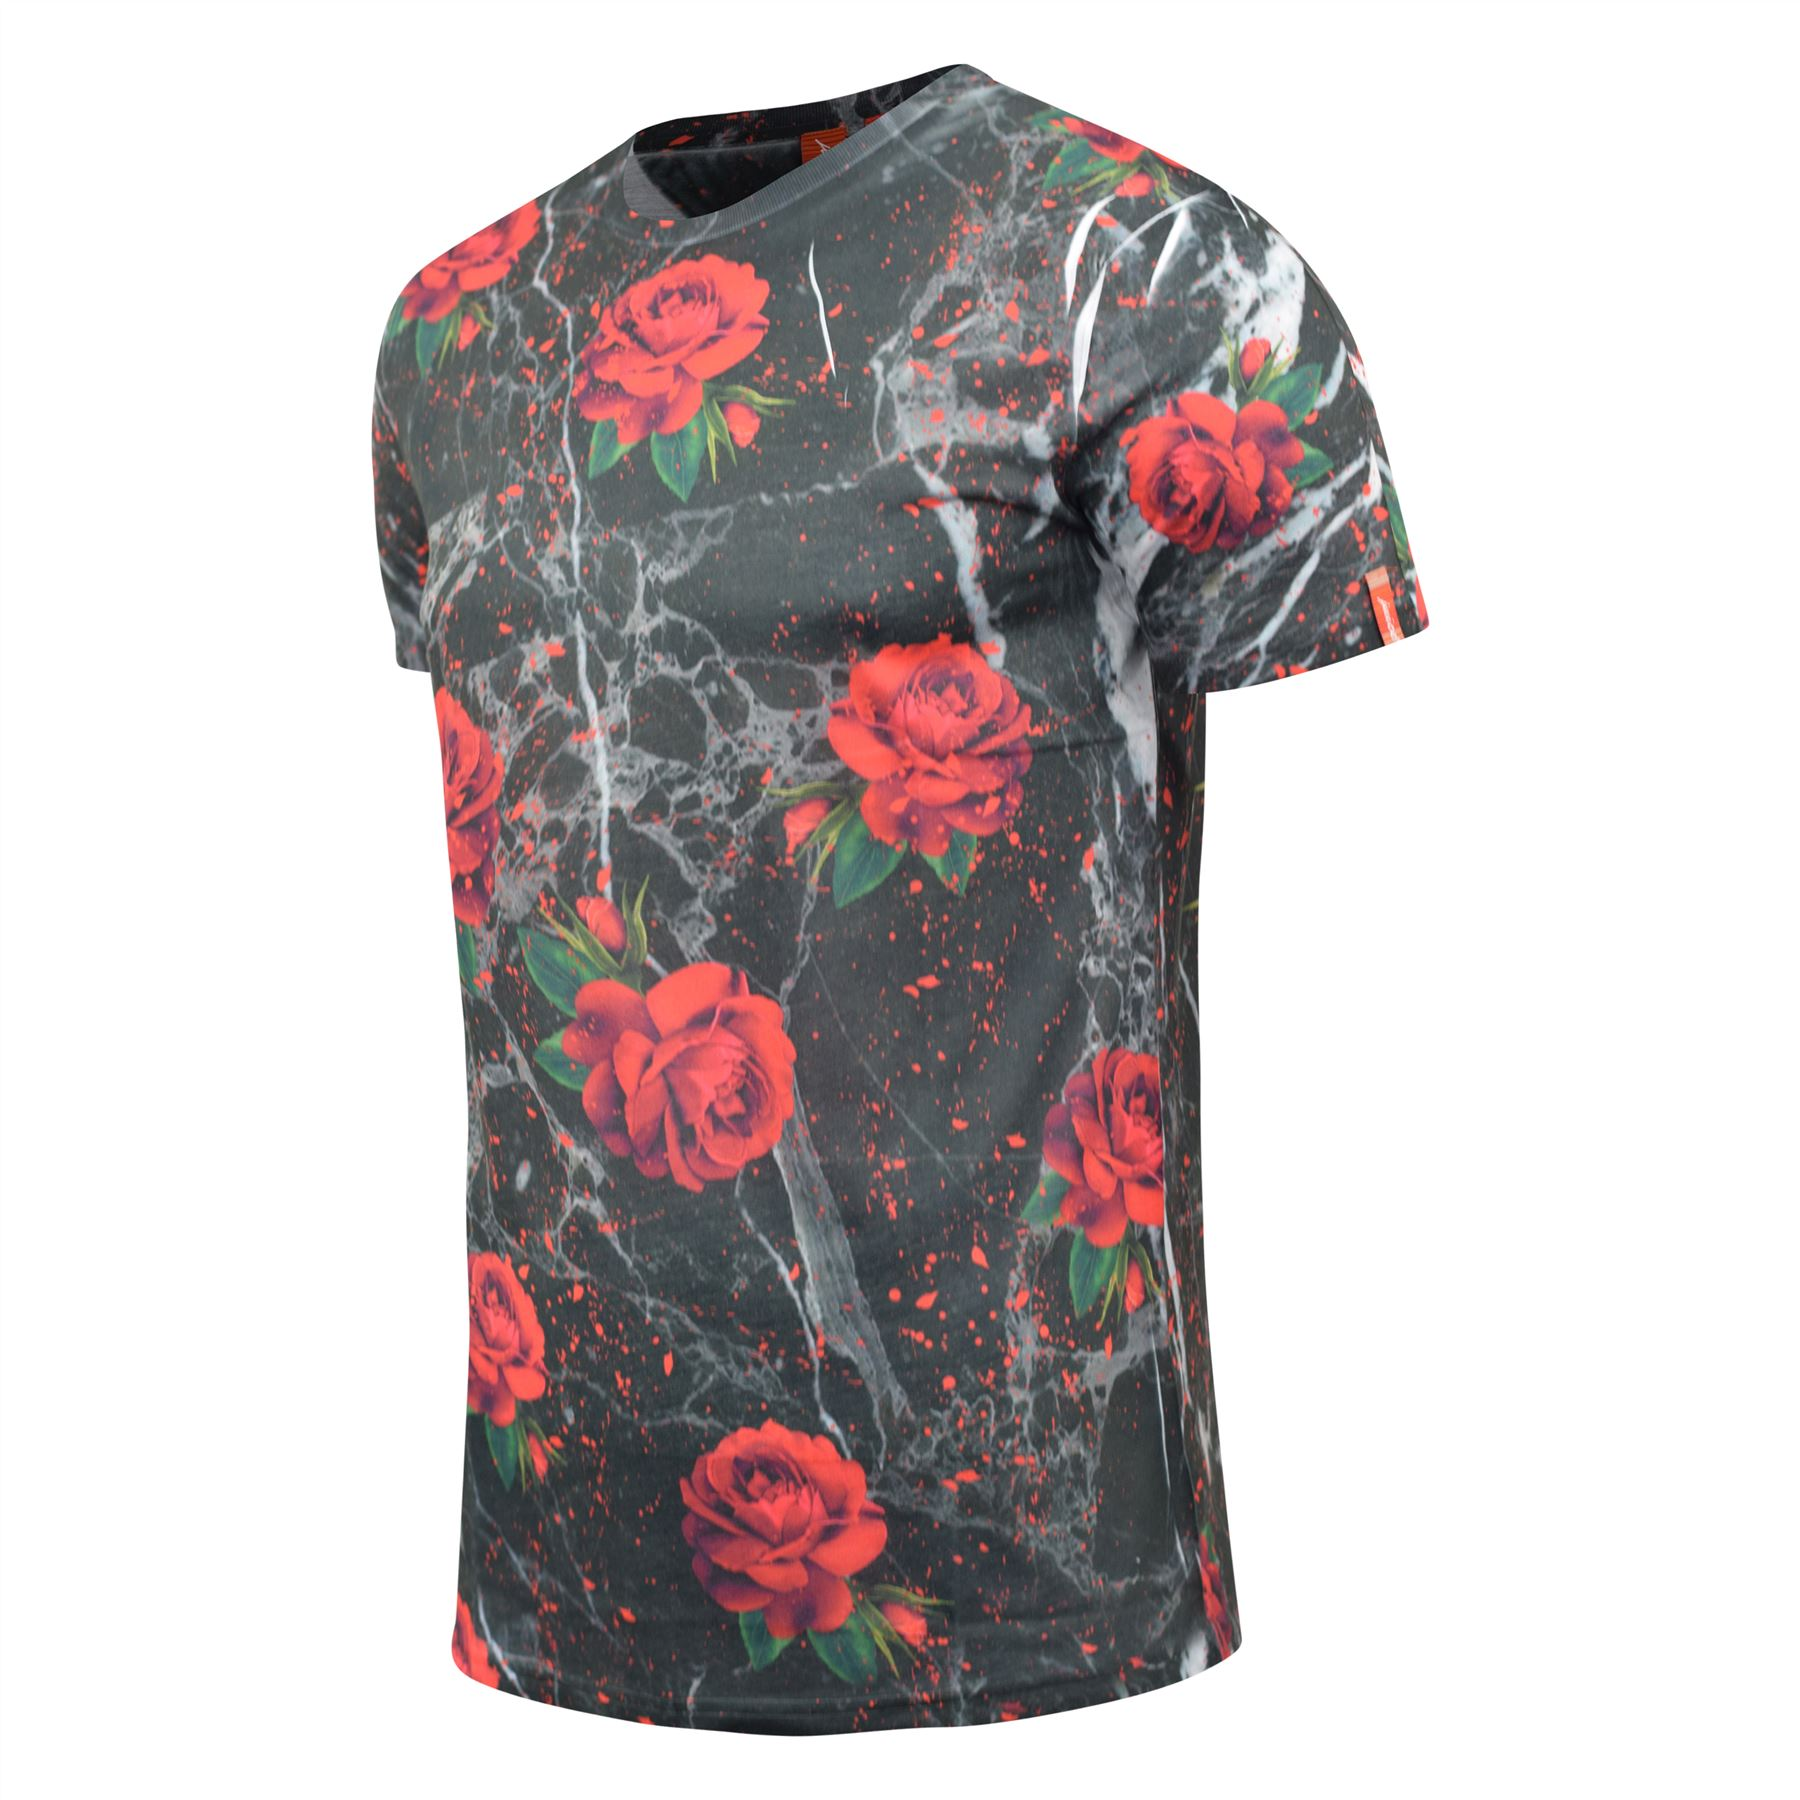 Mens-T-Shirt-Juice-Floral-Print-Flower-Crew-Neck-Tee-Top thumbnail 12